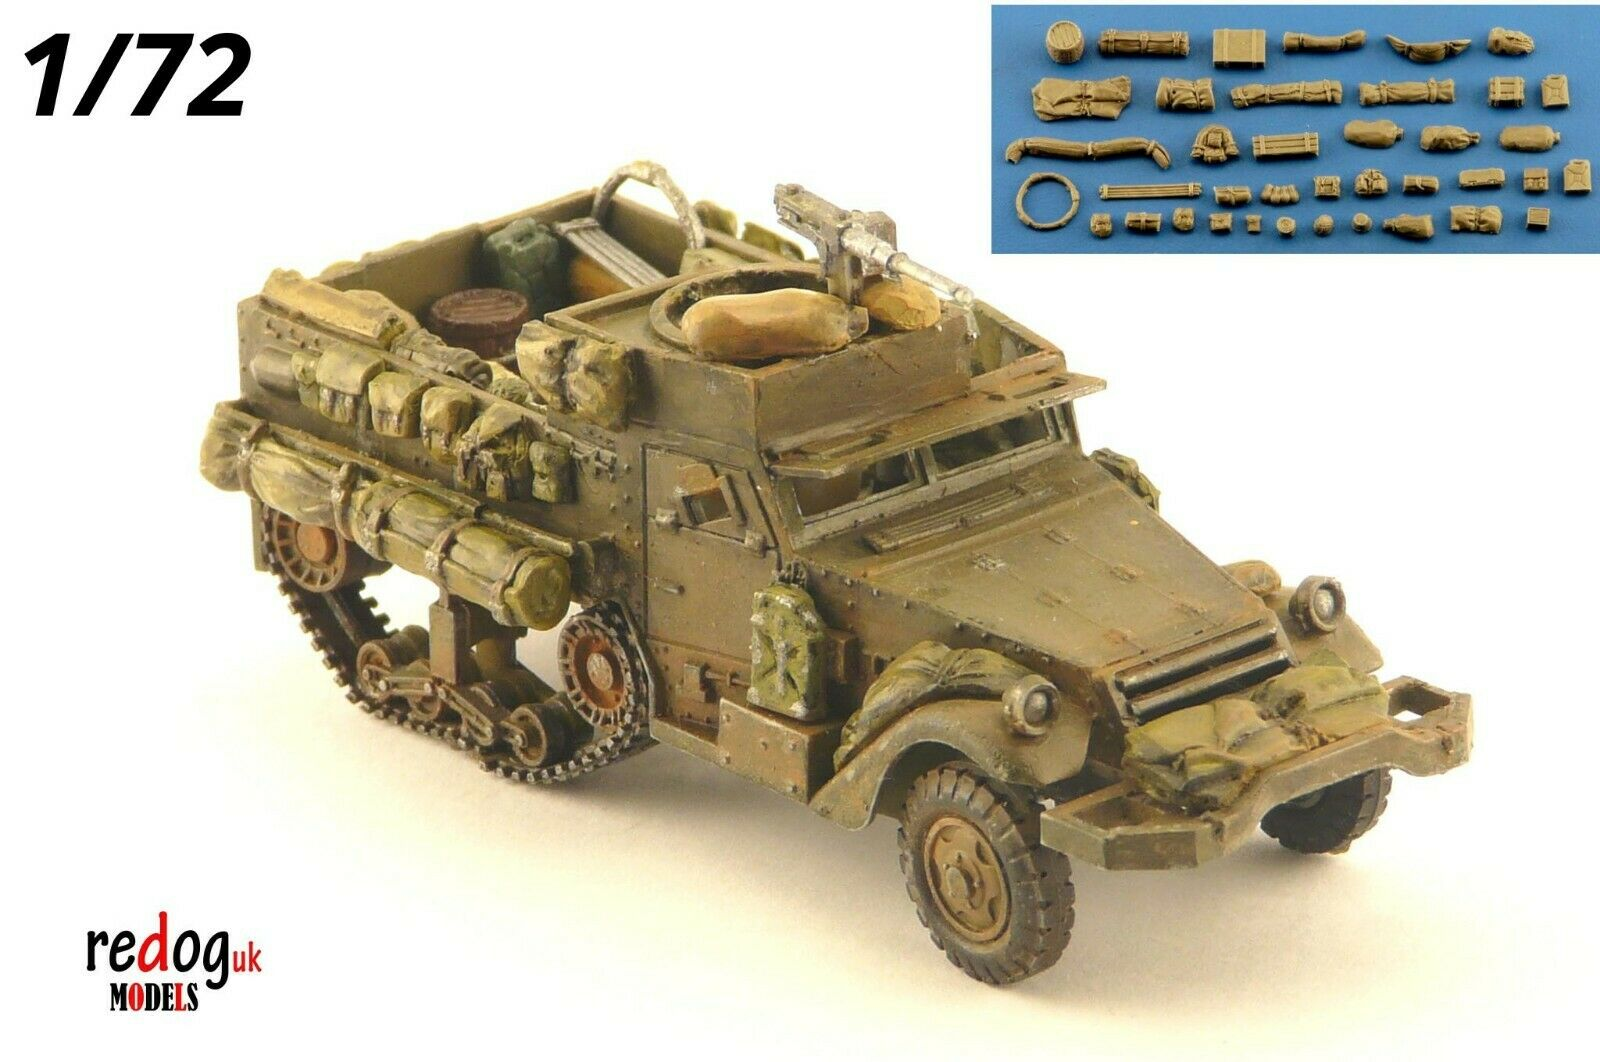 1/72 M4 US Half Track Overloaded Military Scale Model Stowage Kit - redoguk